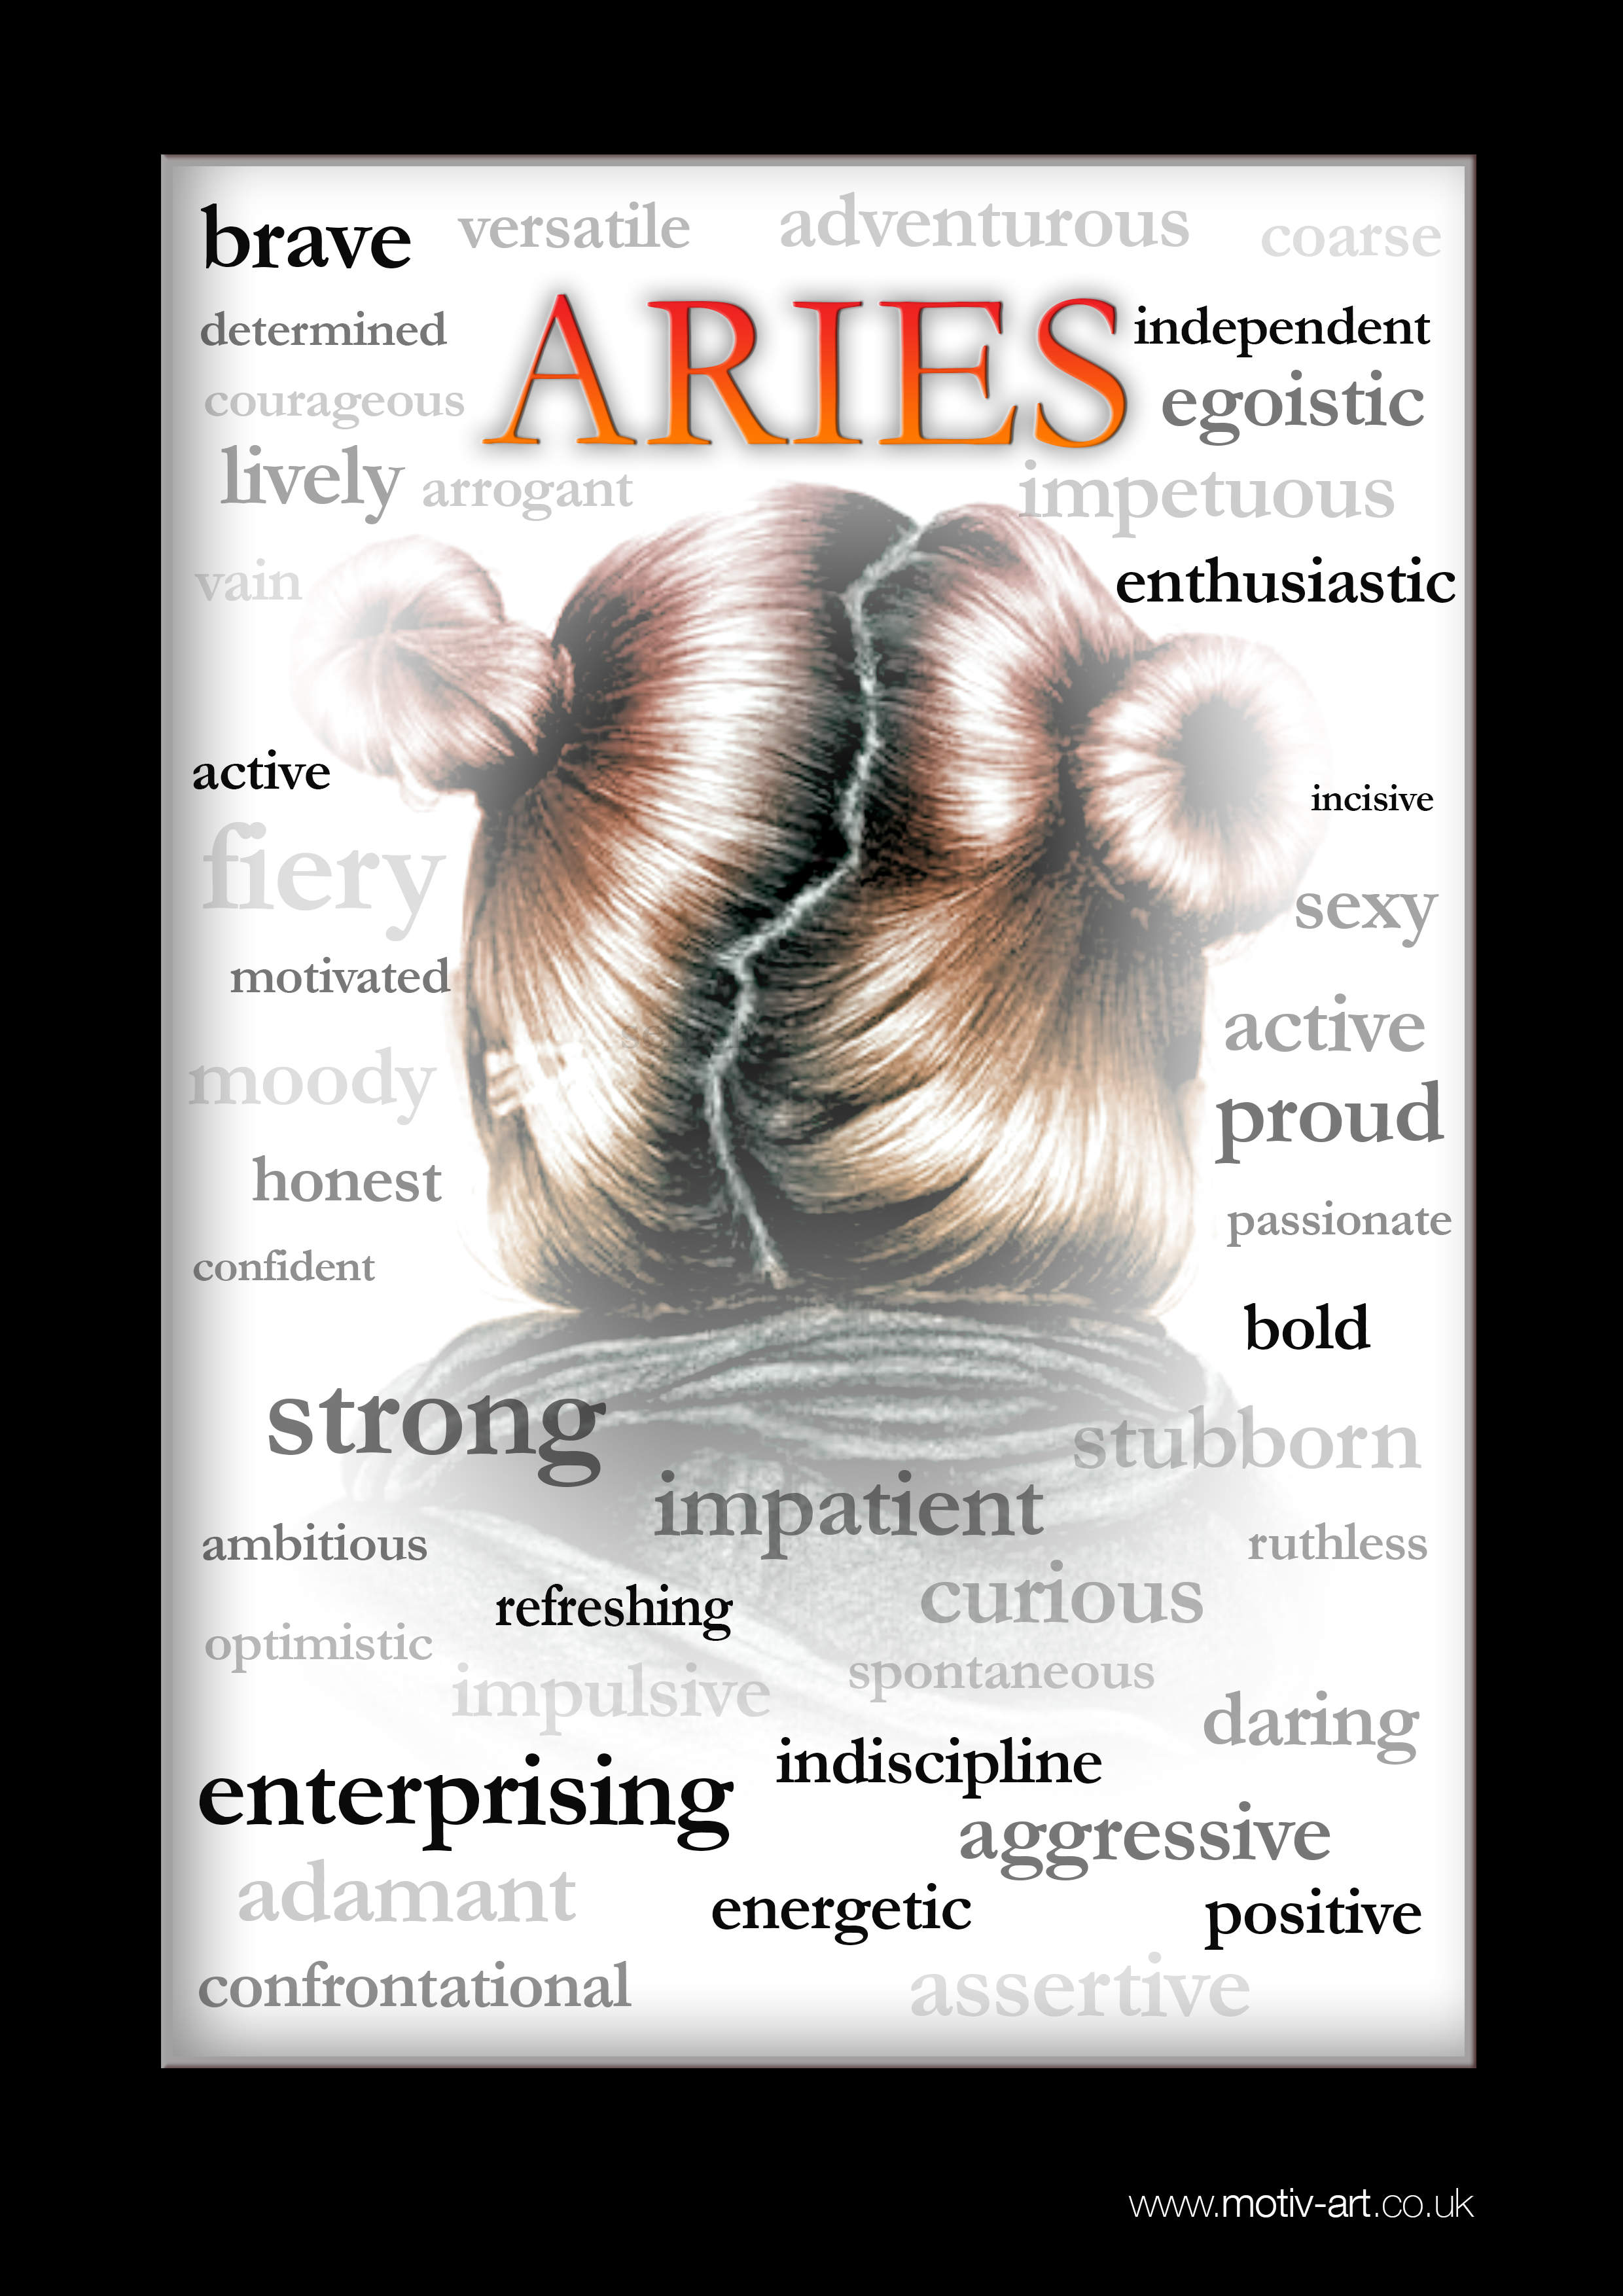 Aries - 21 Mar - 20 Apr